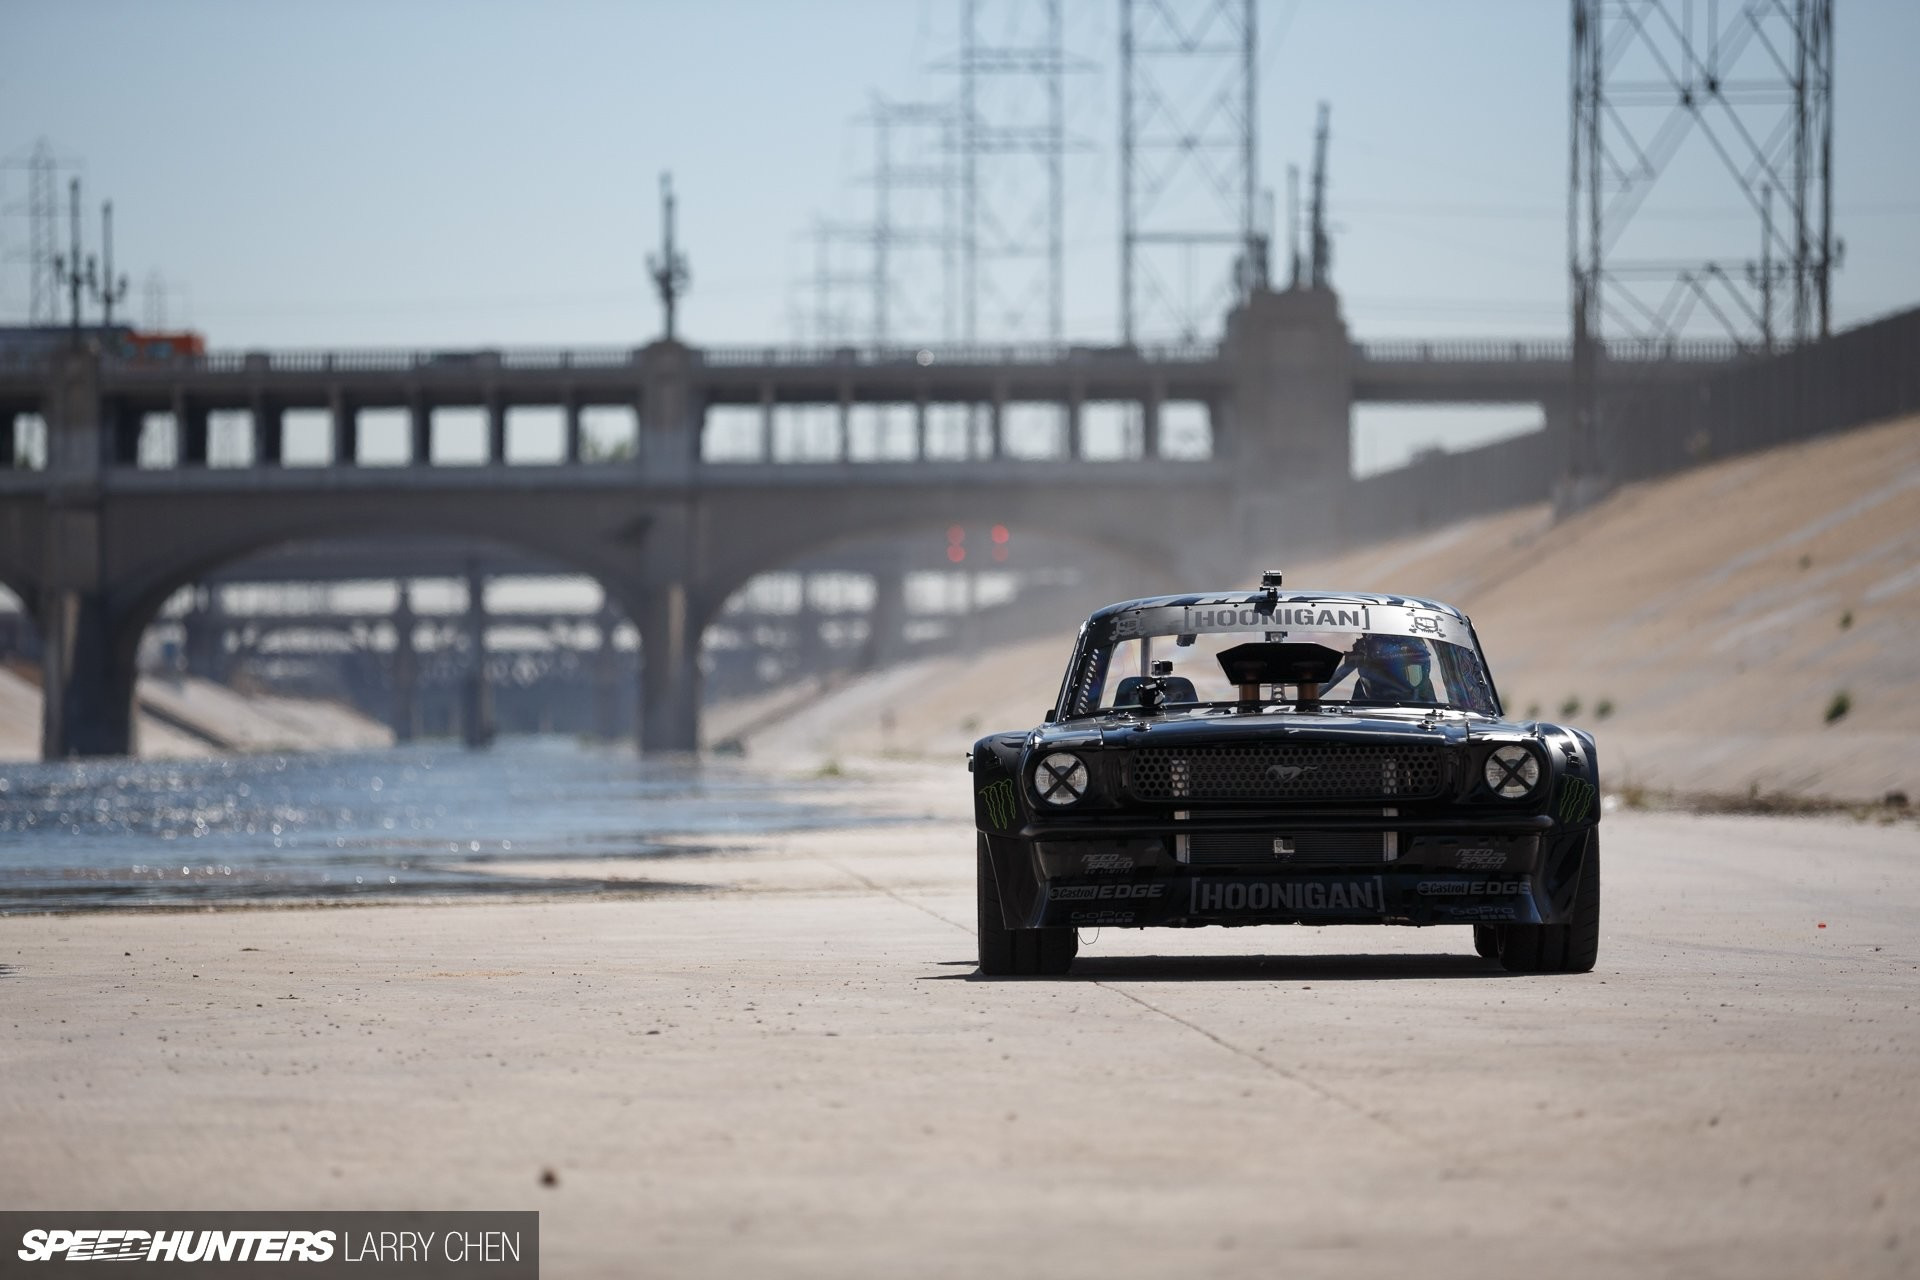 1920x1280 1965 Ford Mustang Hoonigan ASD Gymkhana-Seven drift hot rod rods muscle  race racing monster energy Hoonicorn wallpaper |  | 531606 |  WallpaperUP